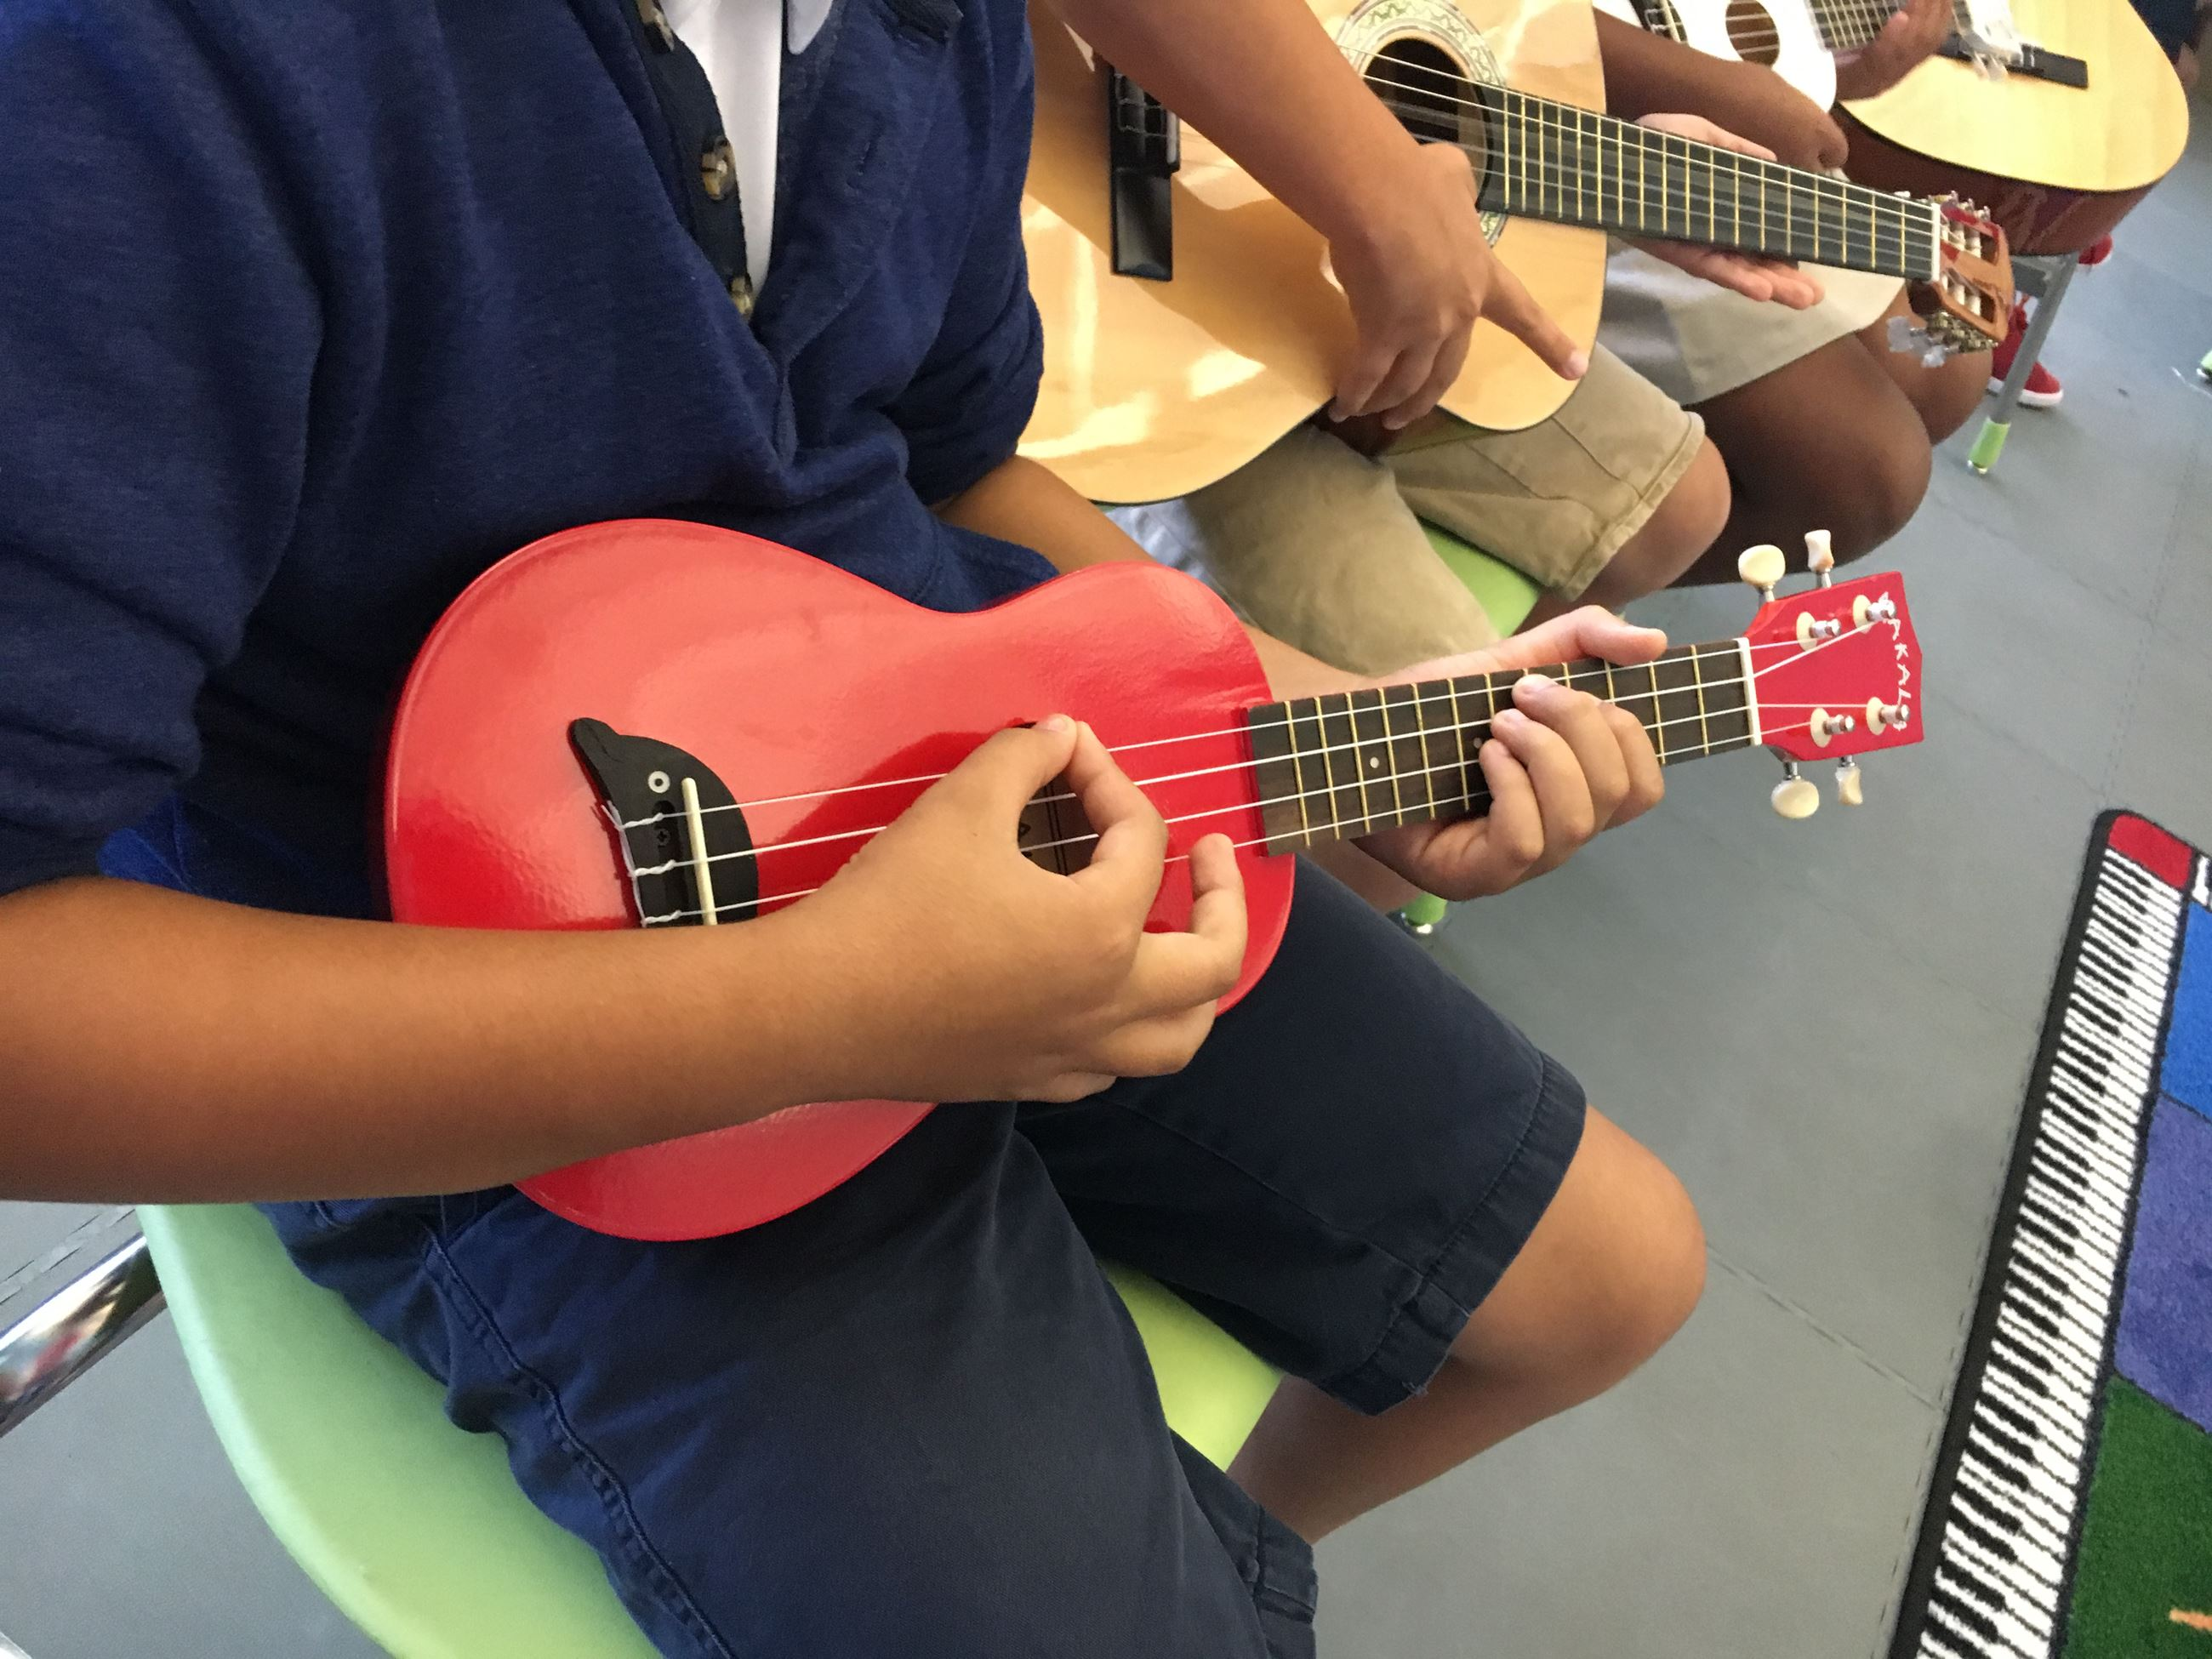 Students practicing with guitars.